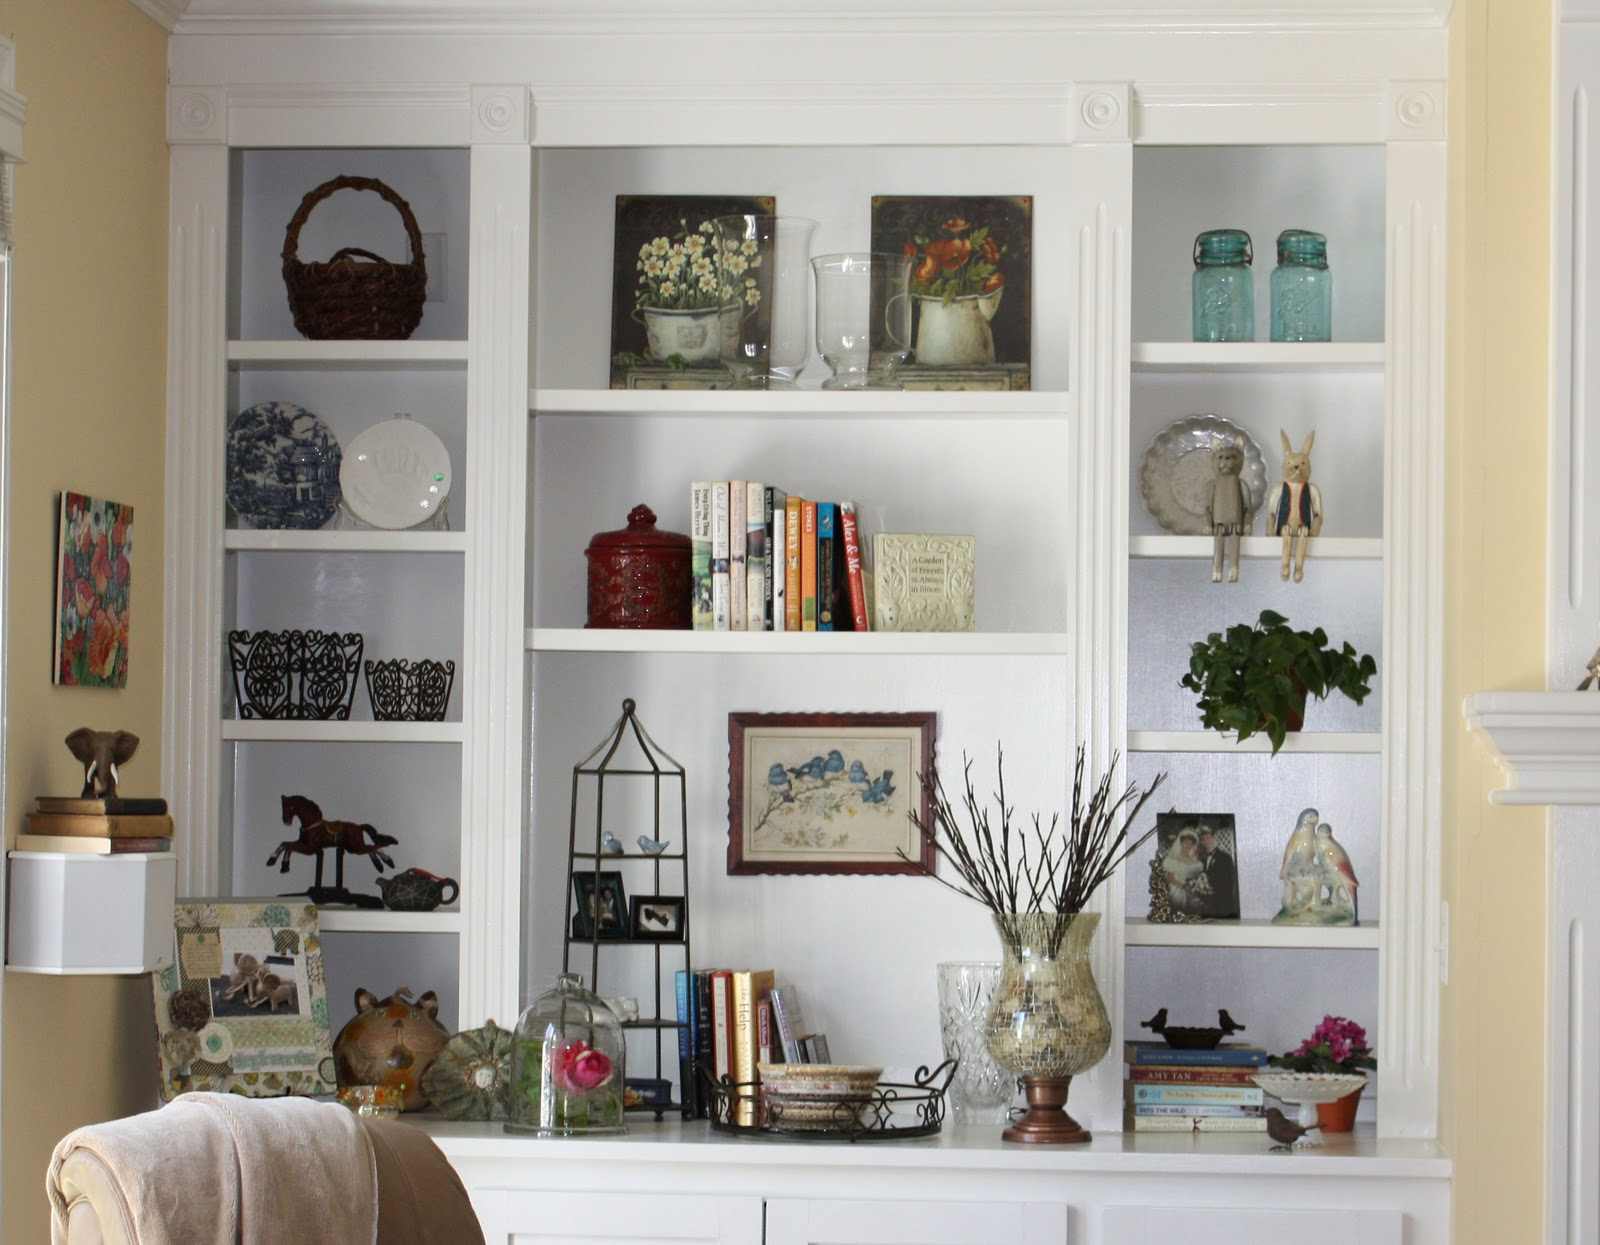 CardBlanc By Kathy Martin Decorating - Built in shelves in family room decorating